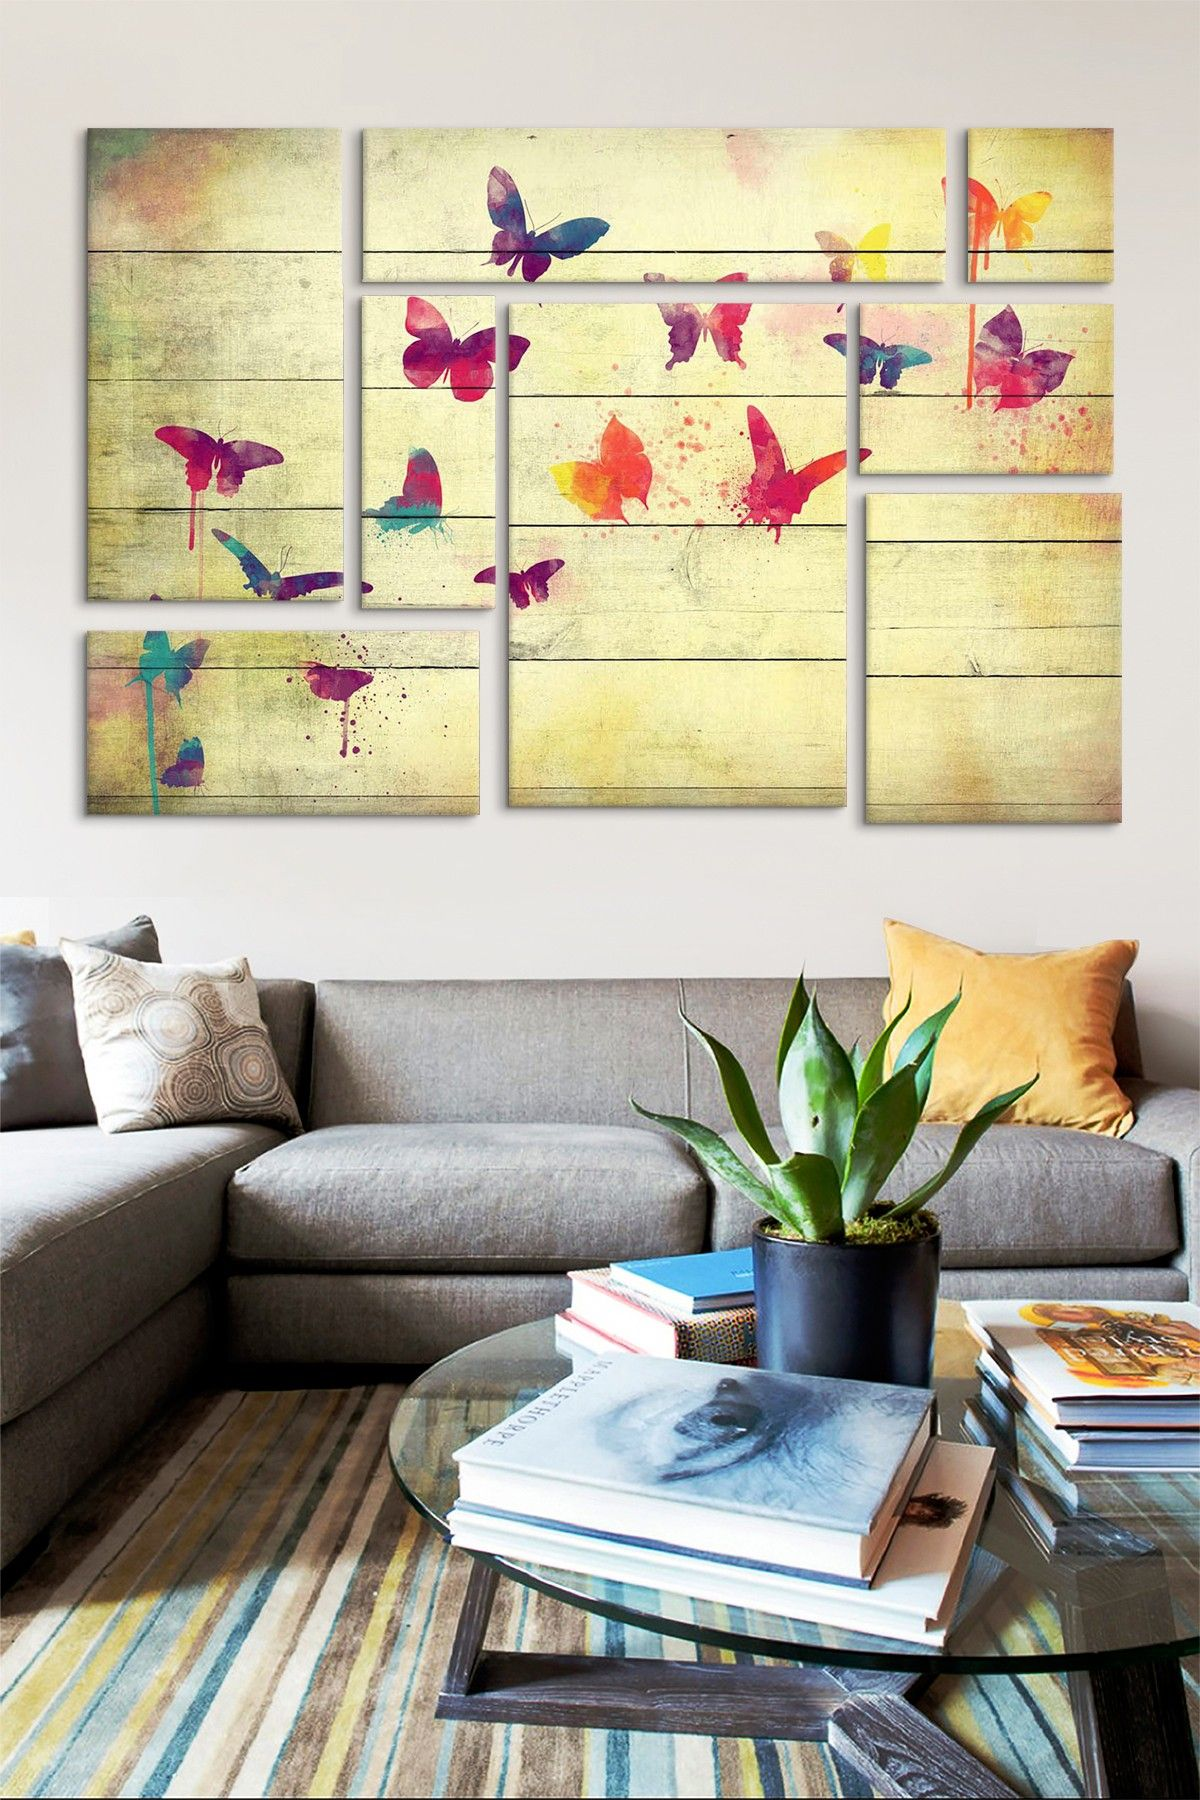 Flutter Away 8 Panel Sectional Wall Art | HauteLook | For the Home ...